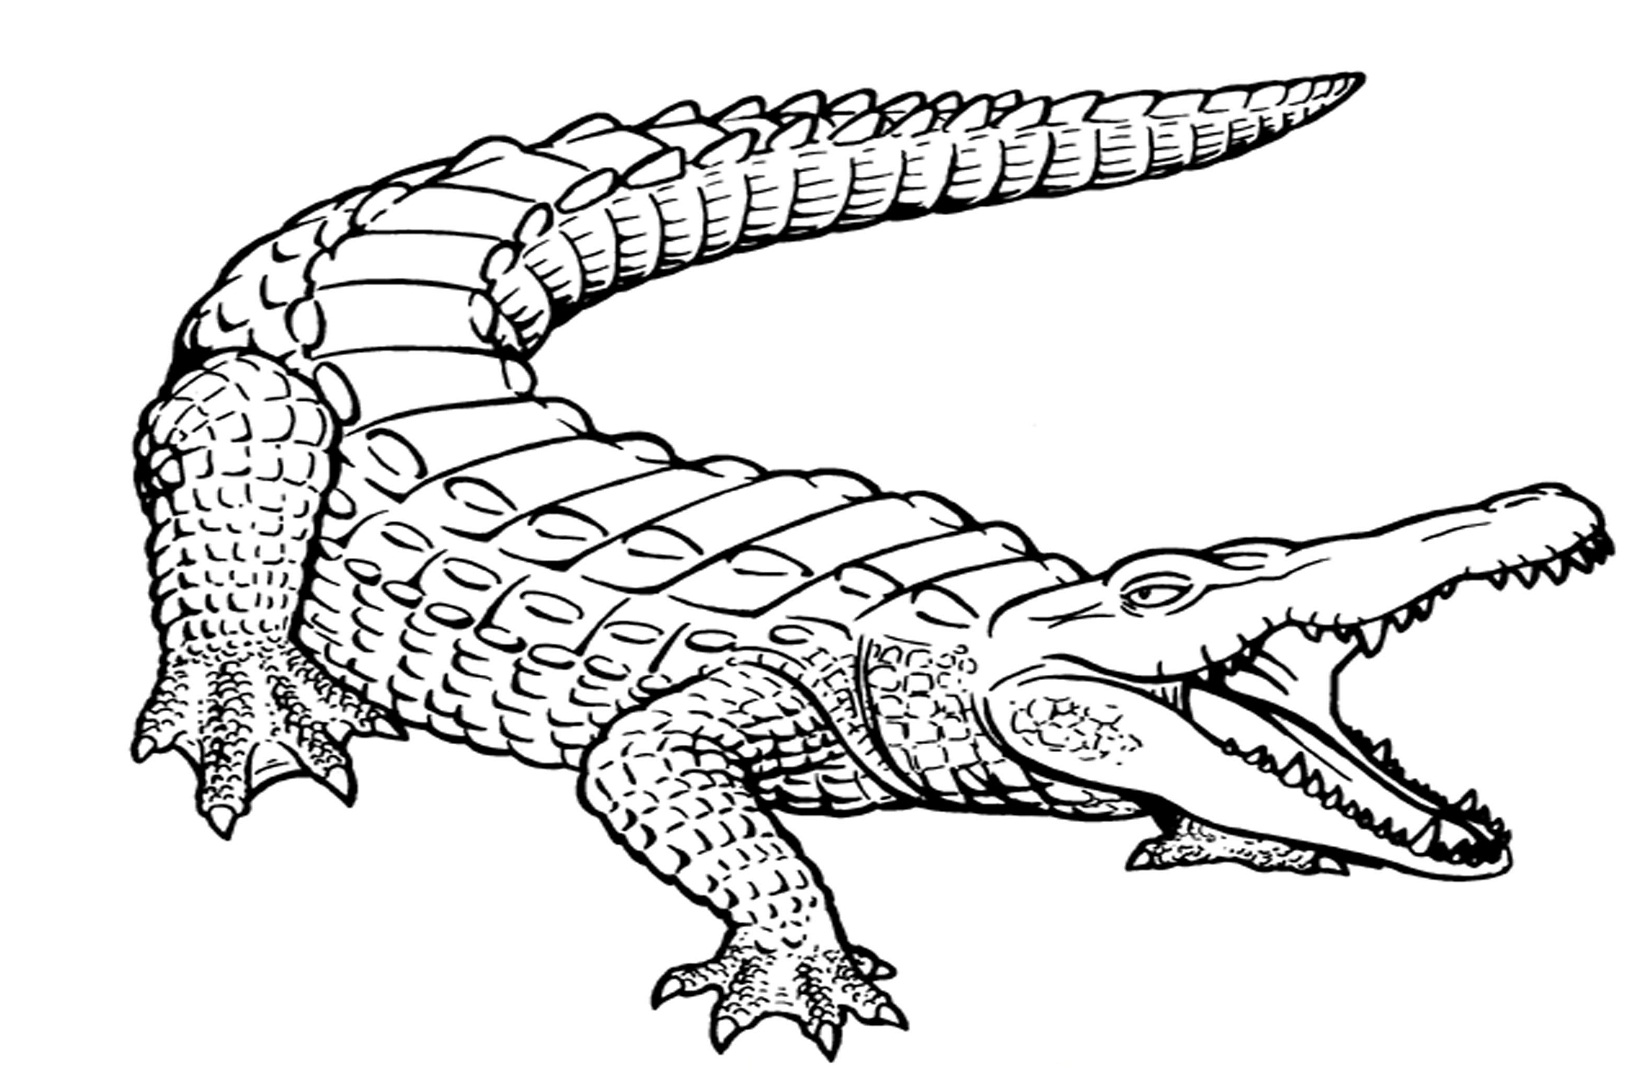 1632x1087 Gator Coloring Pages Coloring Pages Excellent Florida Gators